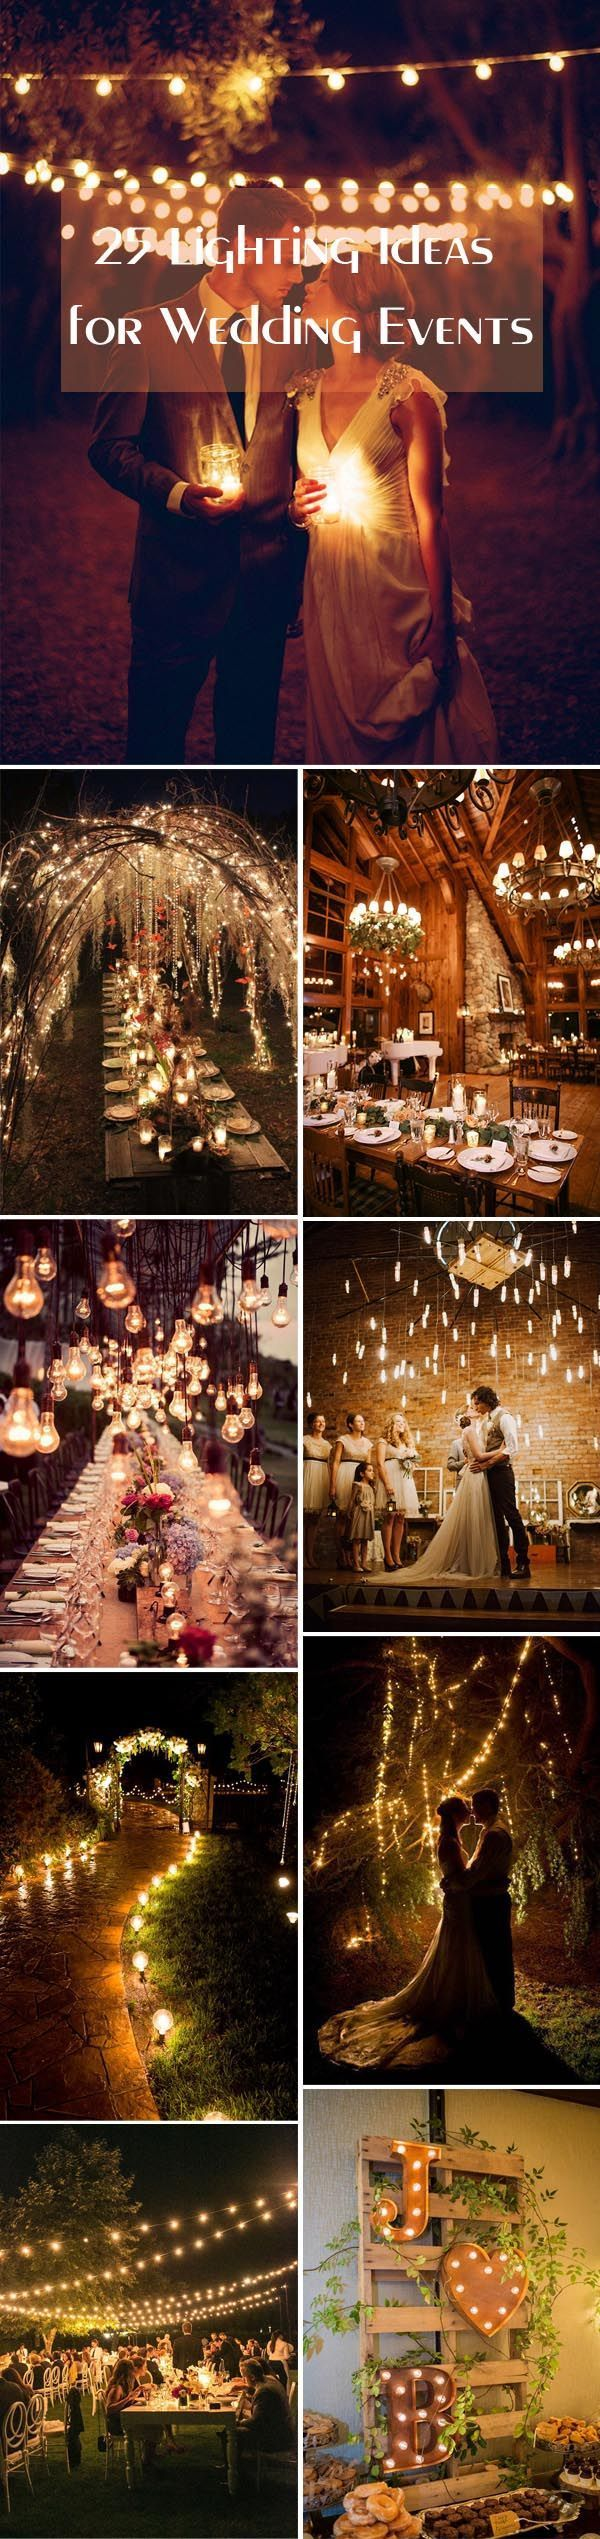 As you may know, lighting is one of the hottest wedding décor ideas for receptions and ceremonies. Lighting has the magical power to add a glamorous and romantic touch to the big day and set the mood for their guests. Gorgeous lights are smartly decorated on trees and bushes, ceilings, venues and tents, mason jars, and … ähnliche tolle Projekte und Ideen wie im Bild vorgestellt findest du auch in unserem Magazin . Wir freuen uns auf deinen Besuch. Liebe Grüße